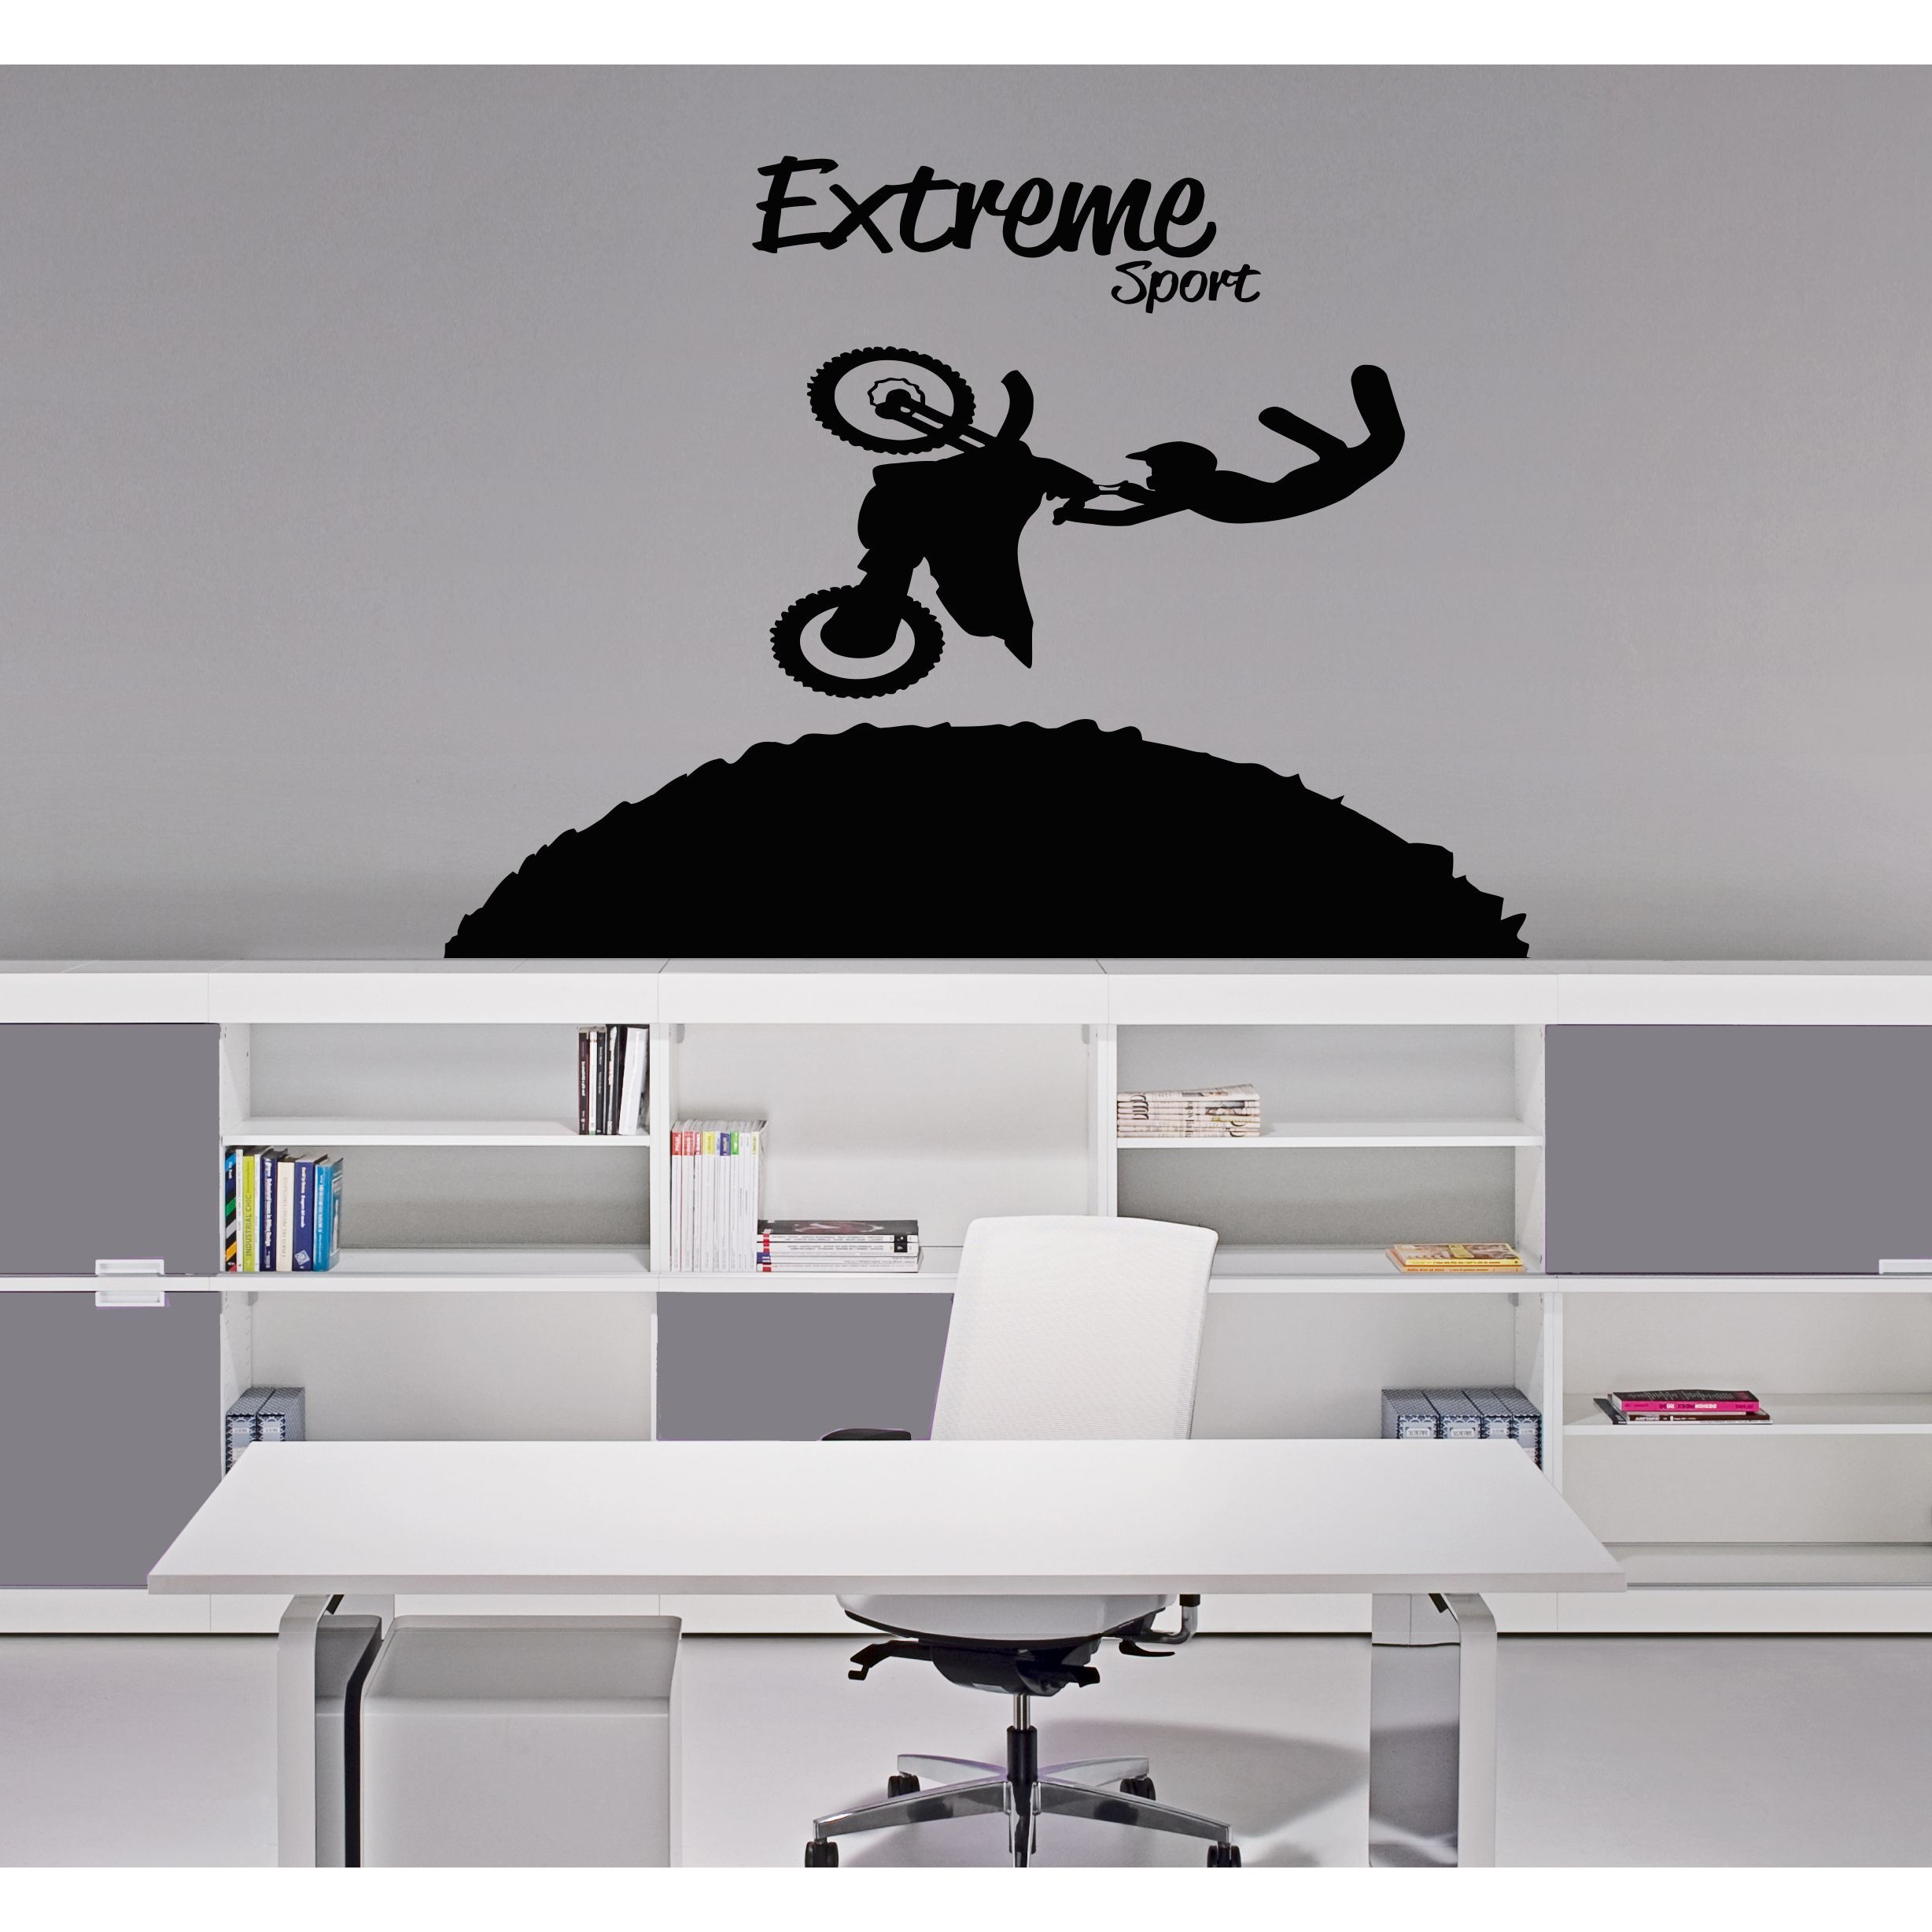 Extreme sports bike wall art sticker decal extreme sports